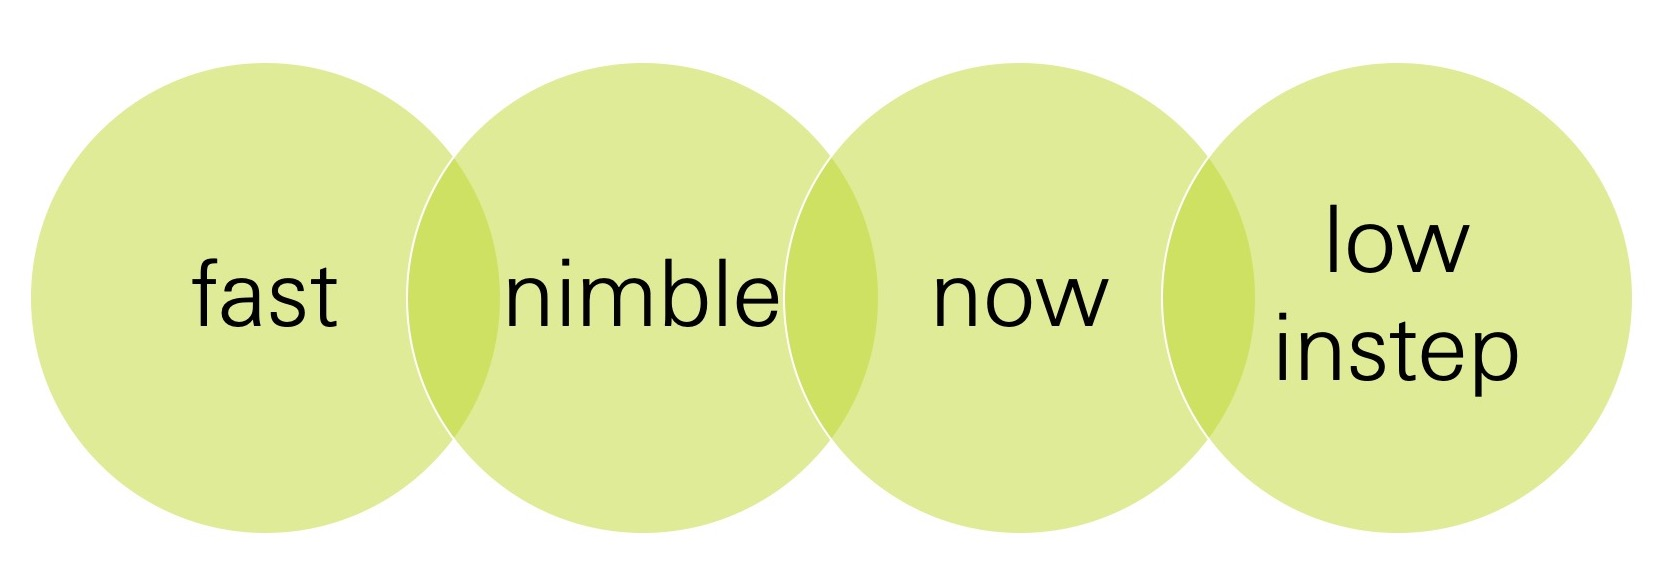 About  page_fast nimble now low instep